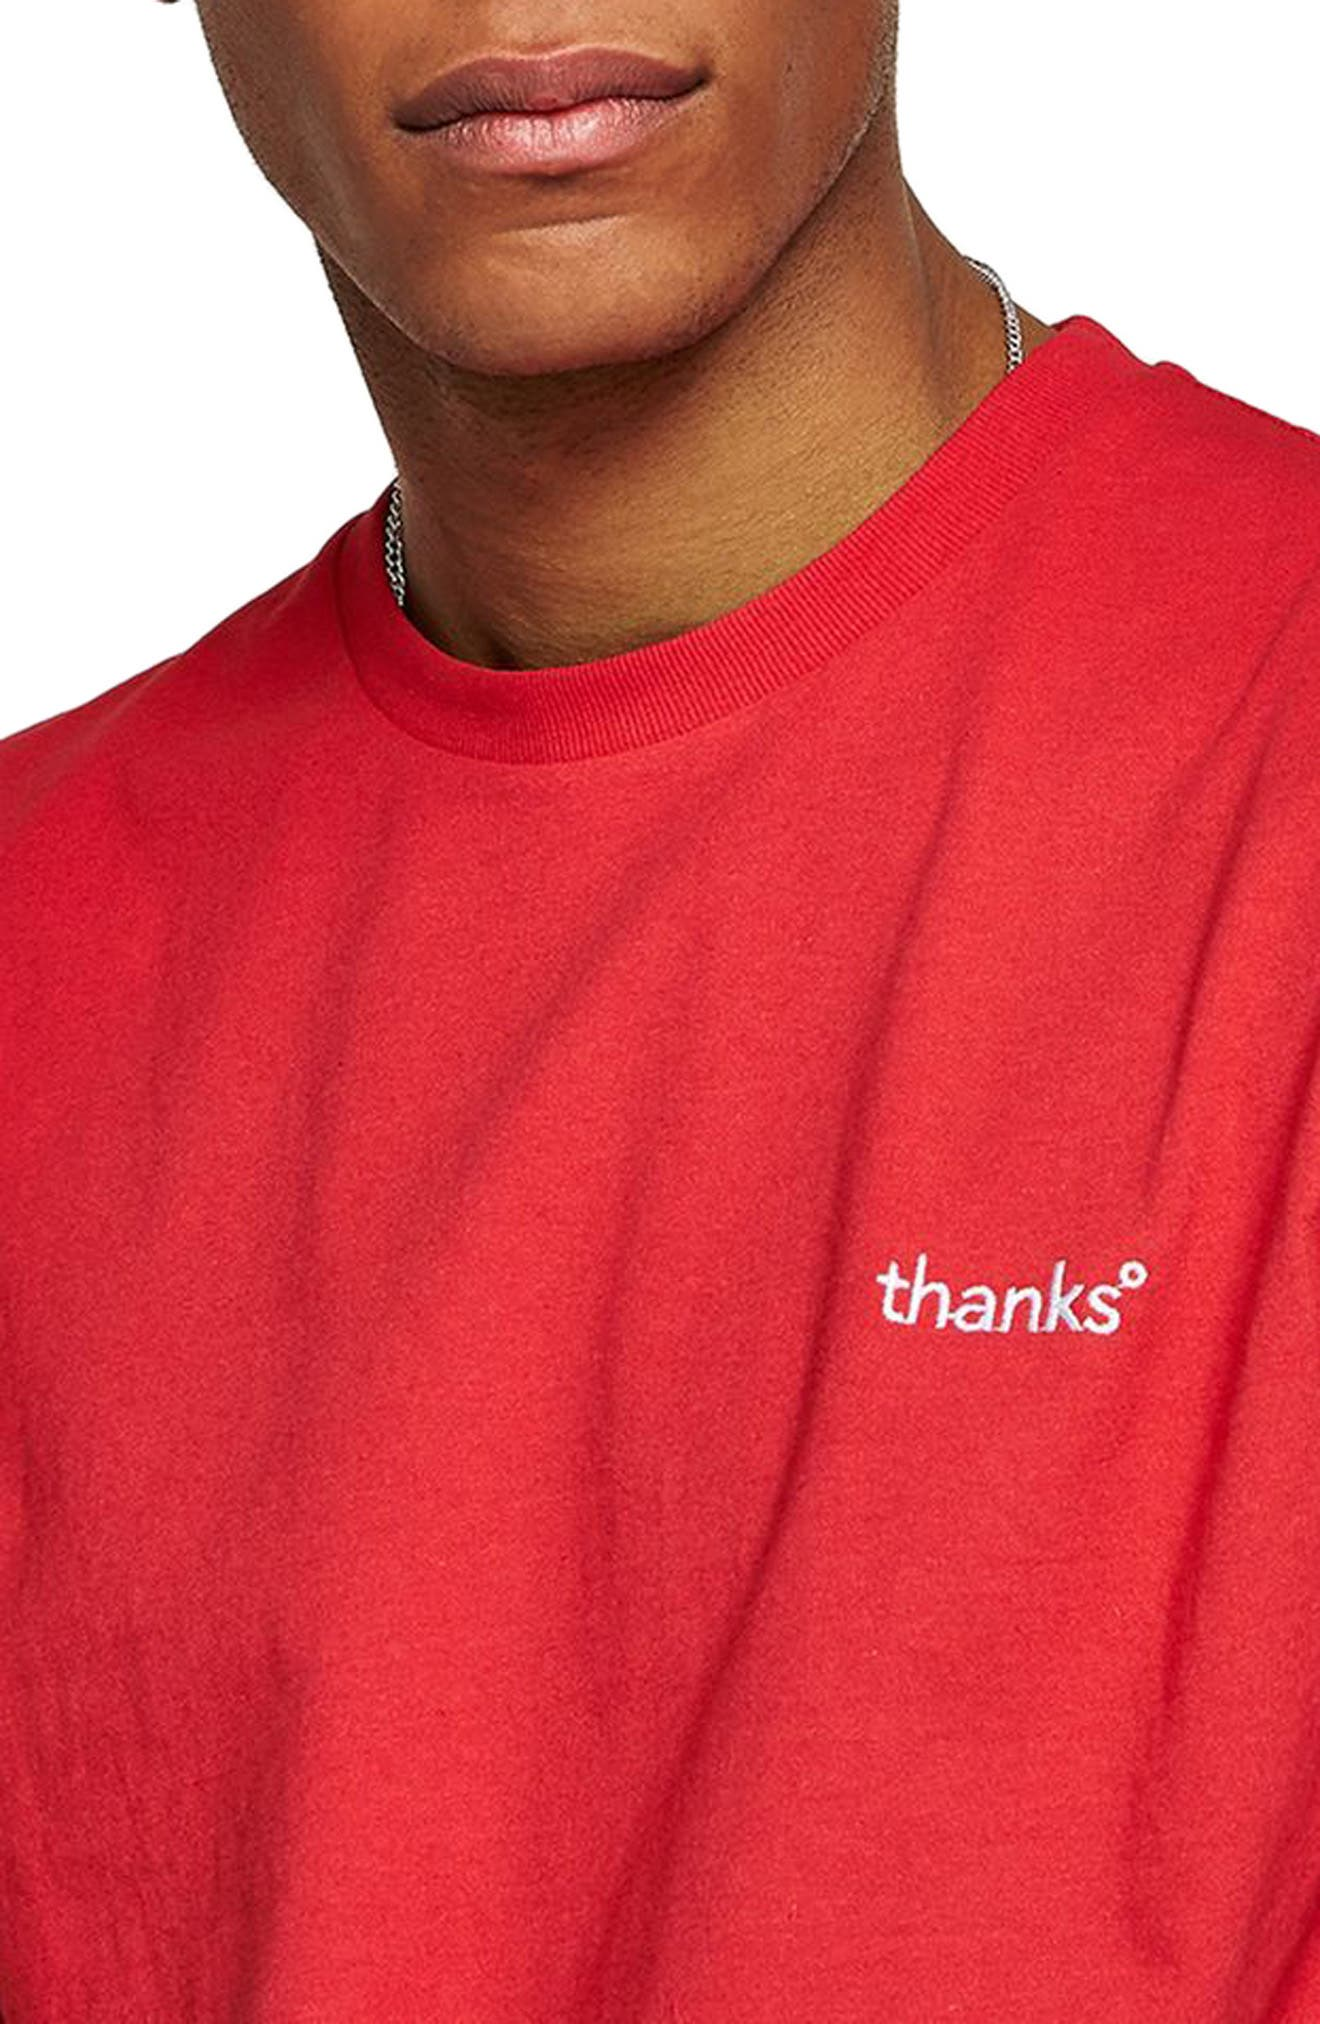 Oversize Embroidered Thanks T-Shirt,                             Alternate thumbnail 3, color,                             Red